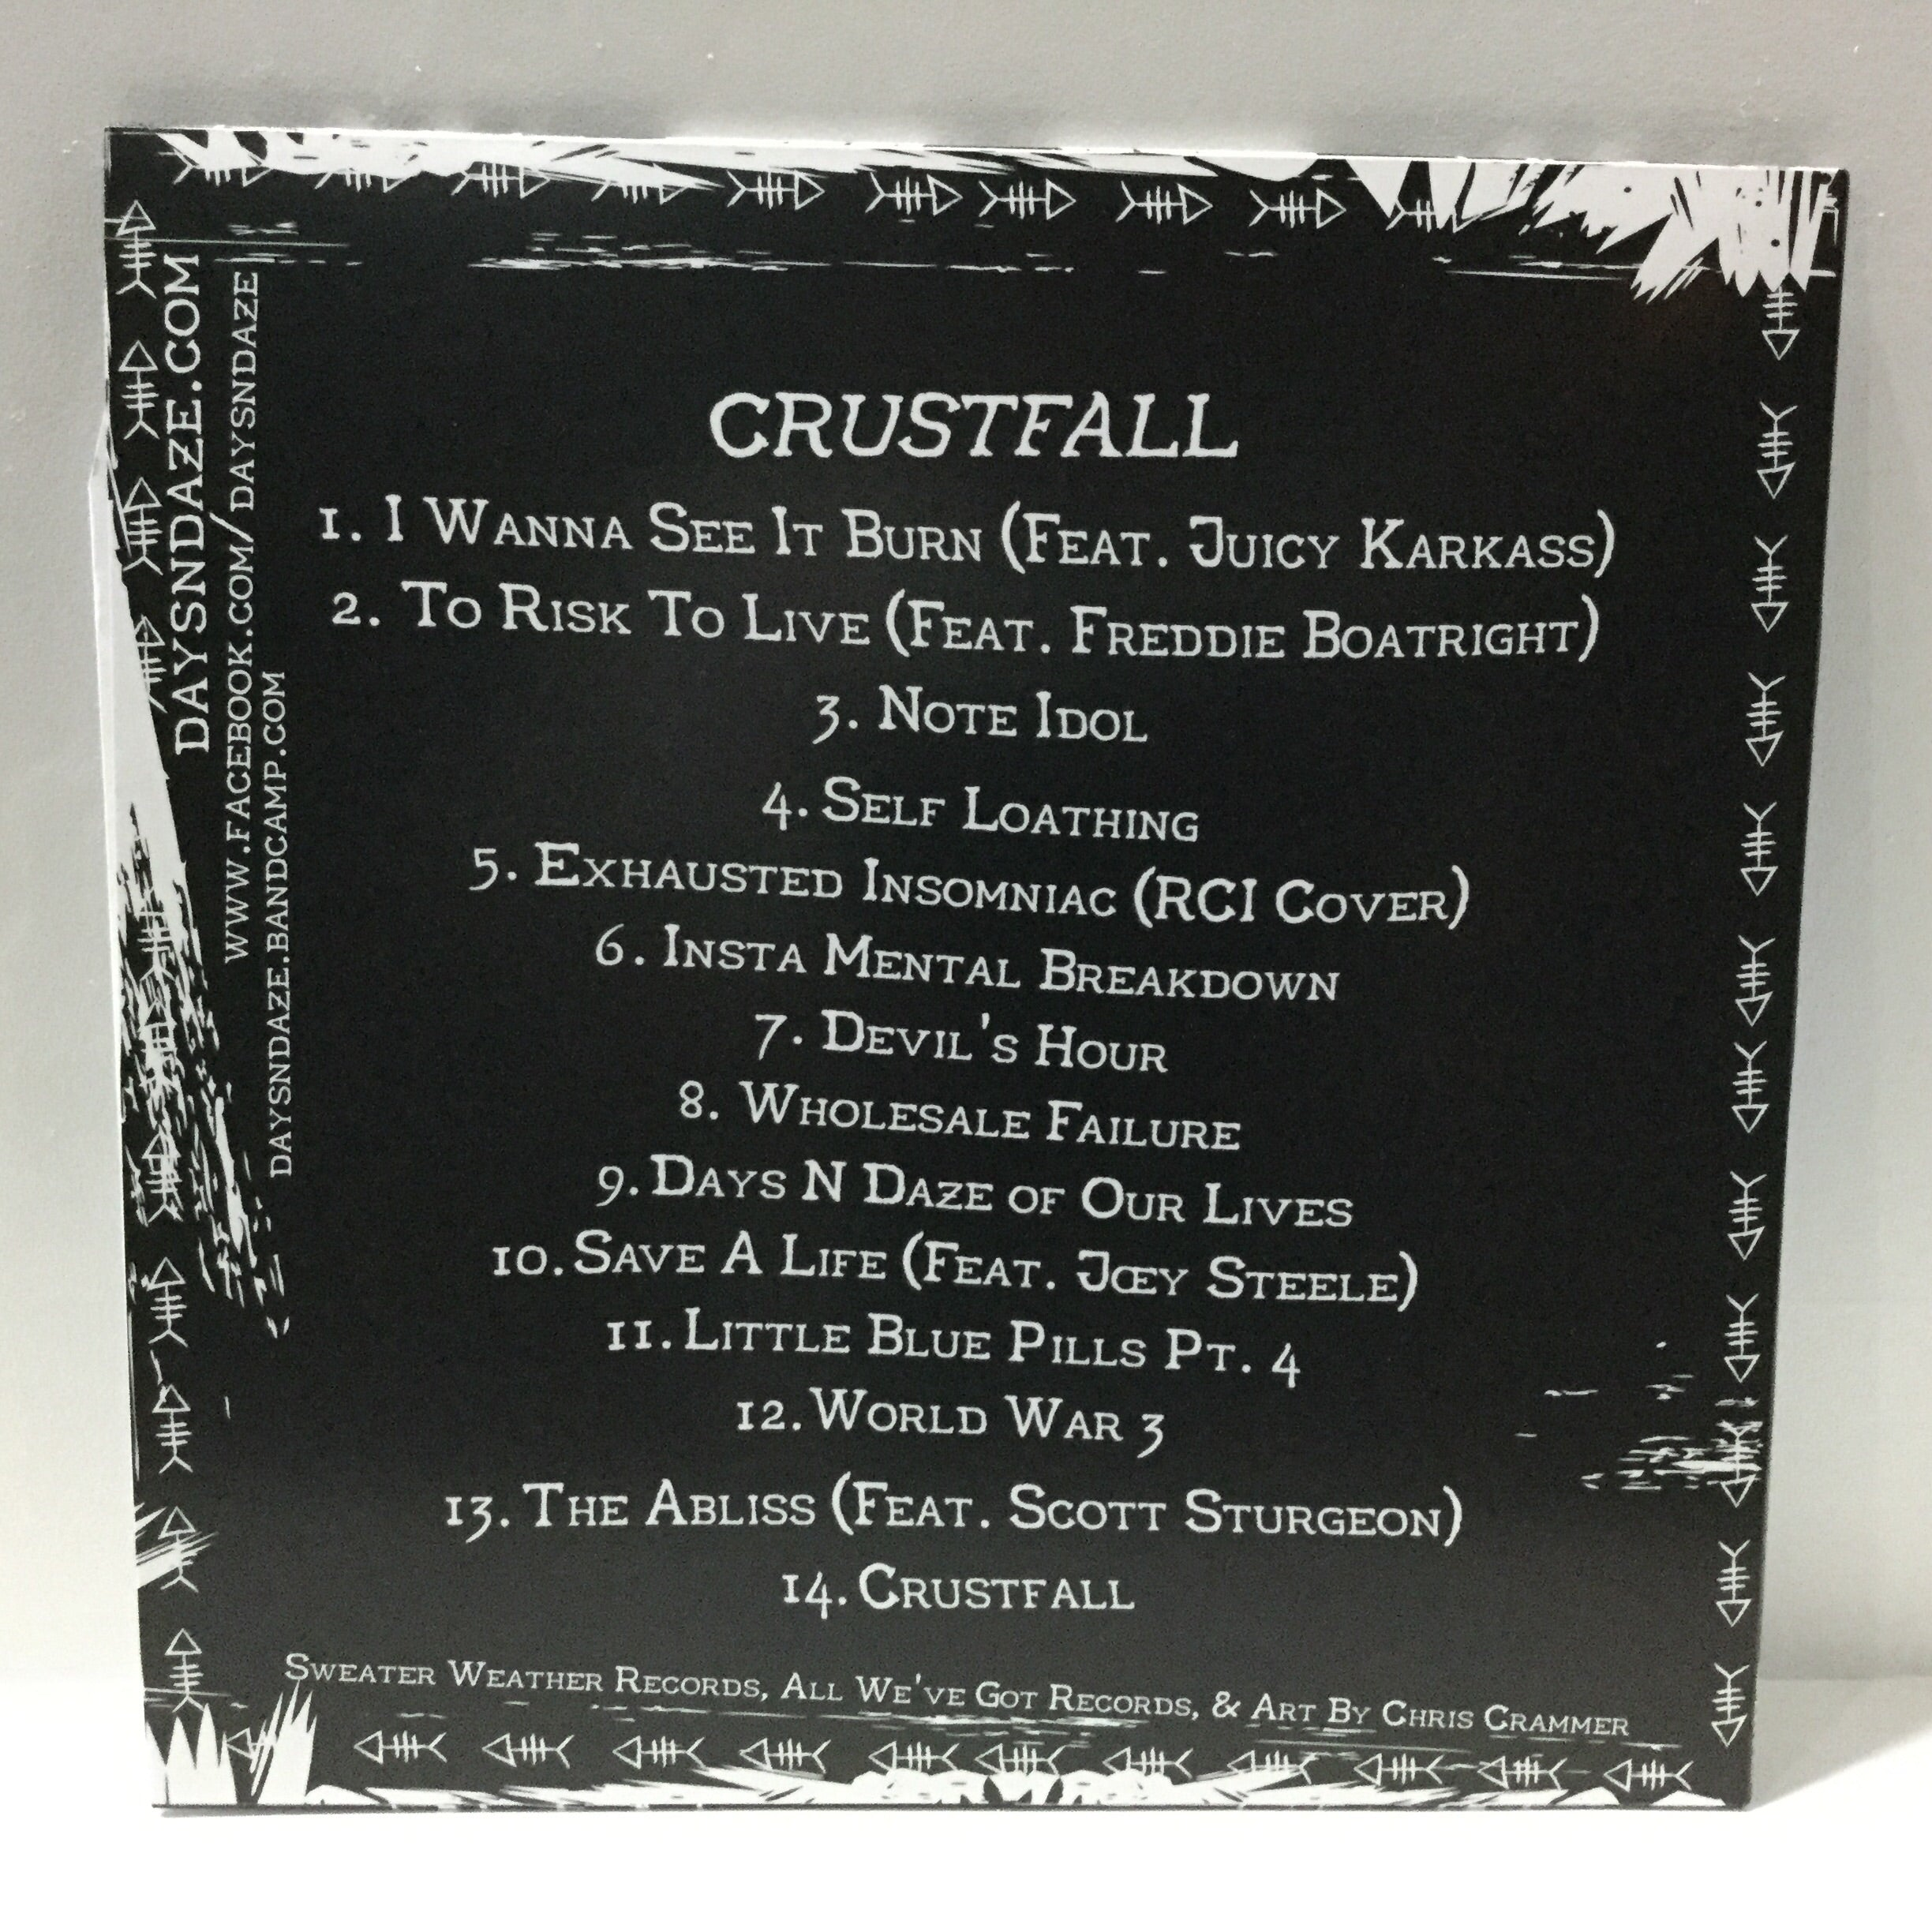 Days N Daze - Crustfall | Niatsus | Cassette Label and Copier at Sustain - Gallery and Shop - Chicago, IL